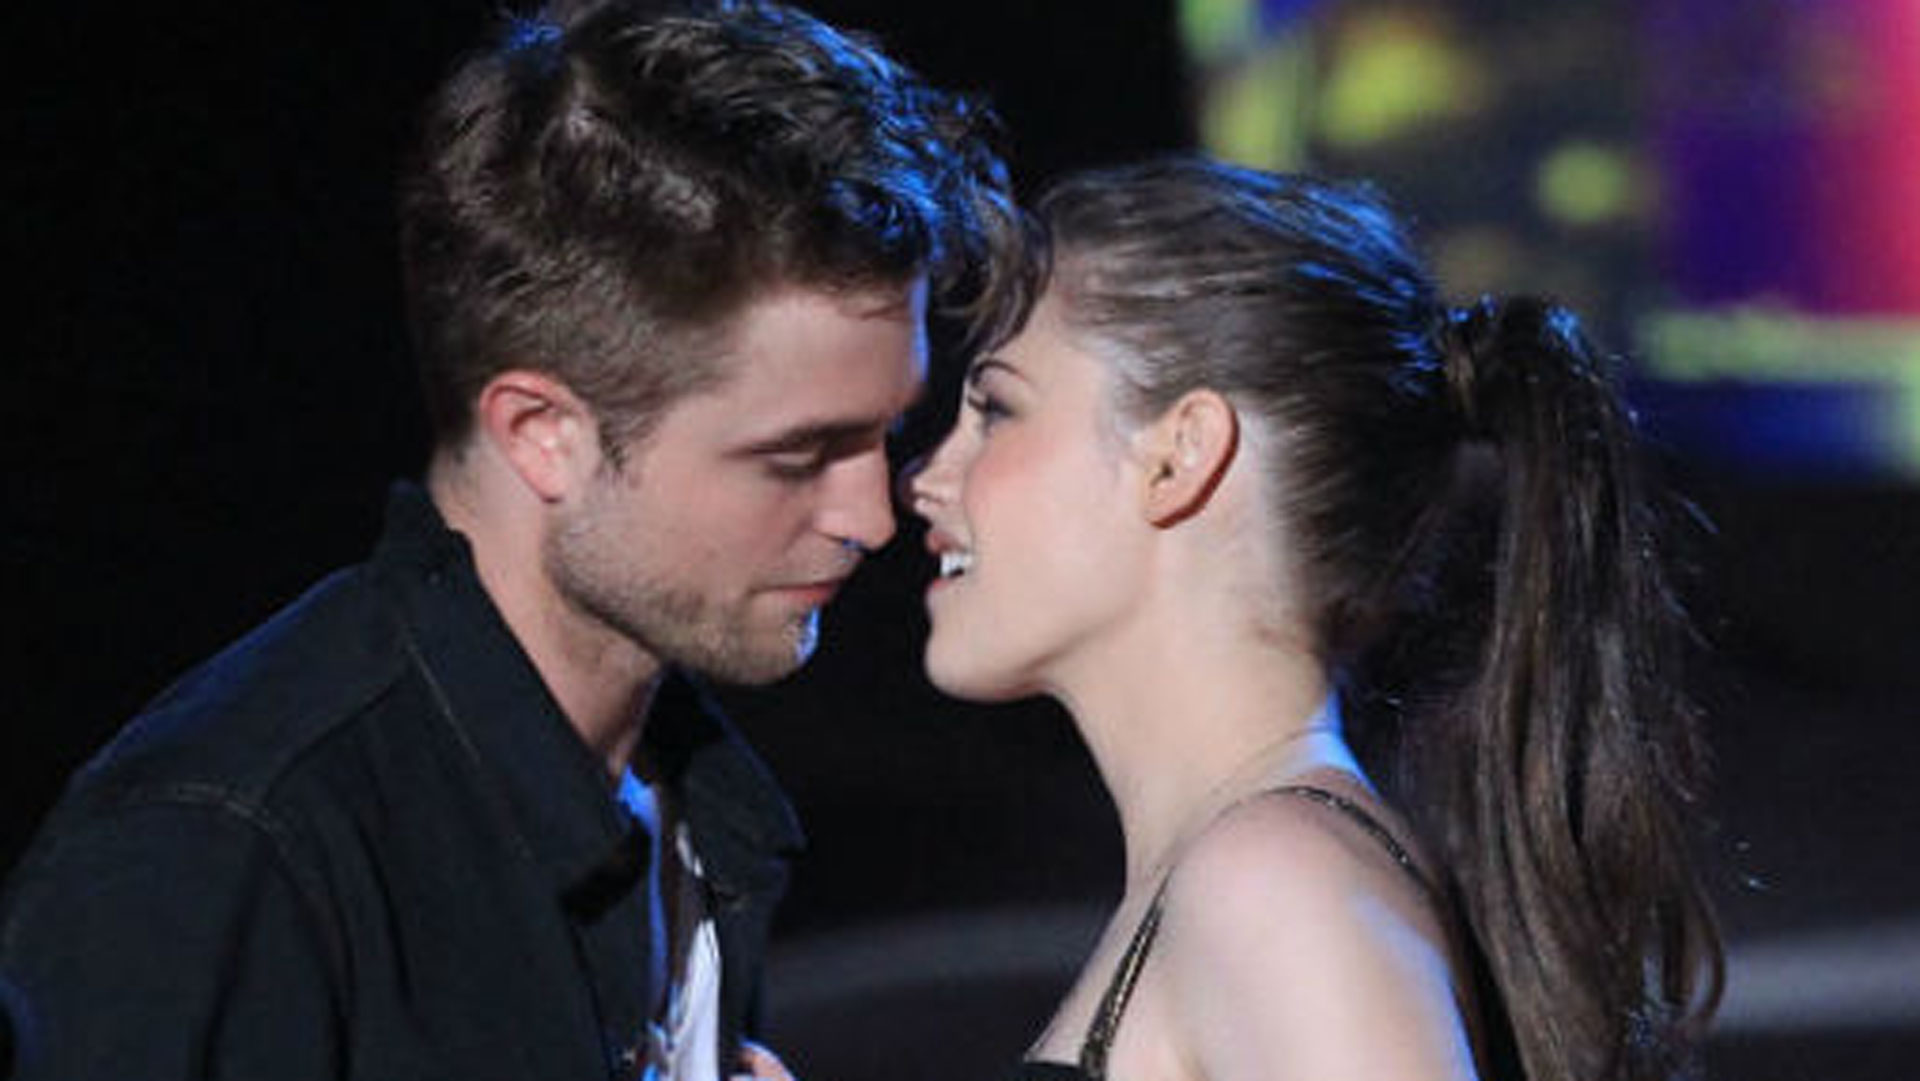 Why Robert Pattinson and Kristen Stewart broke up